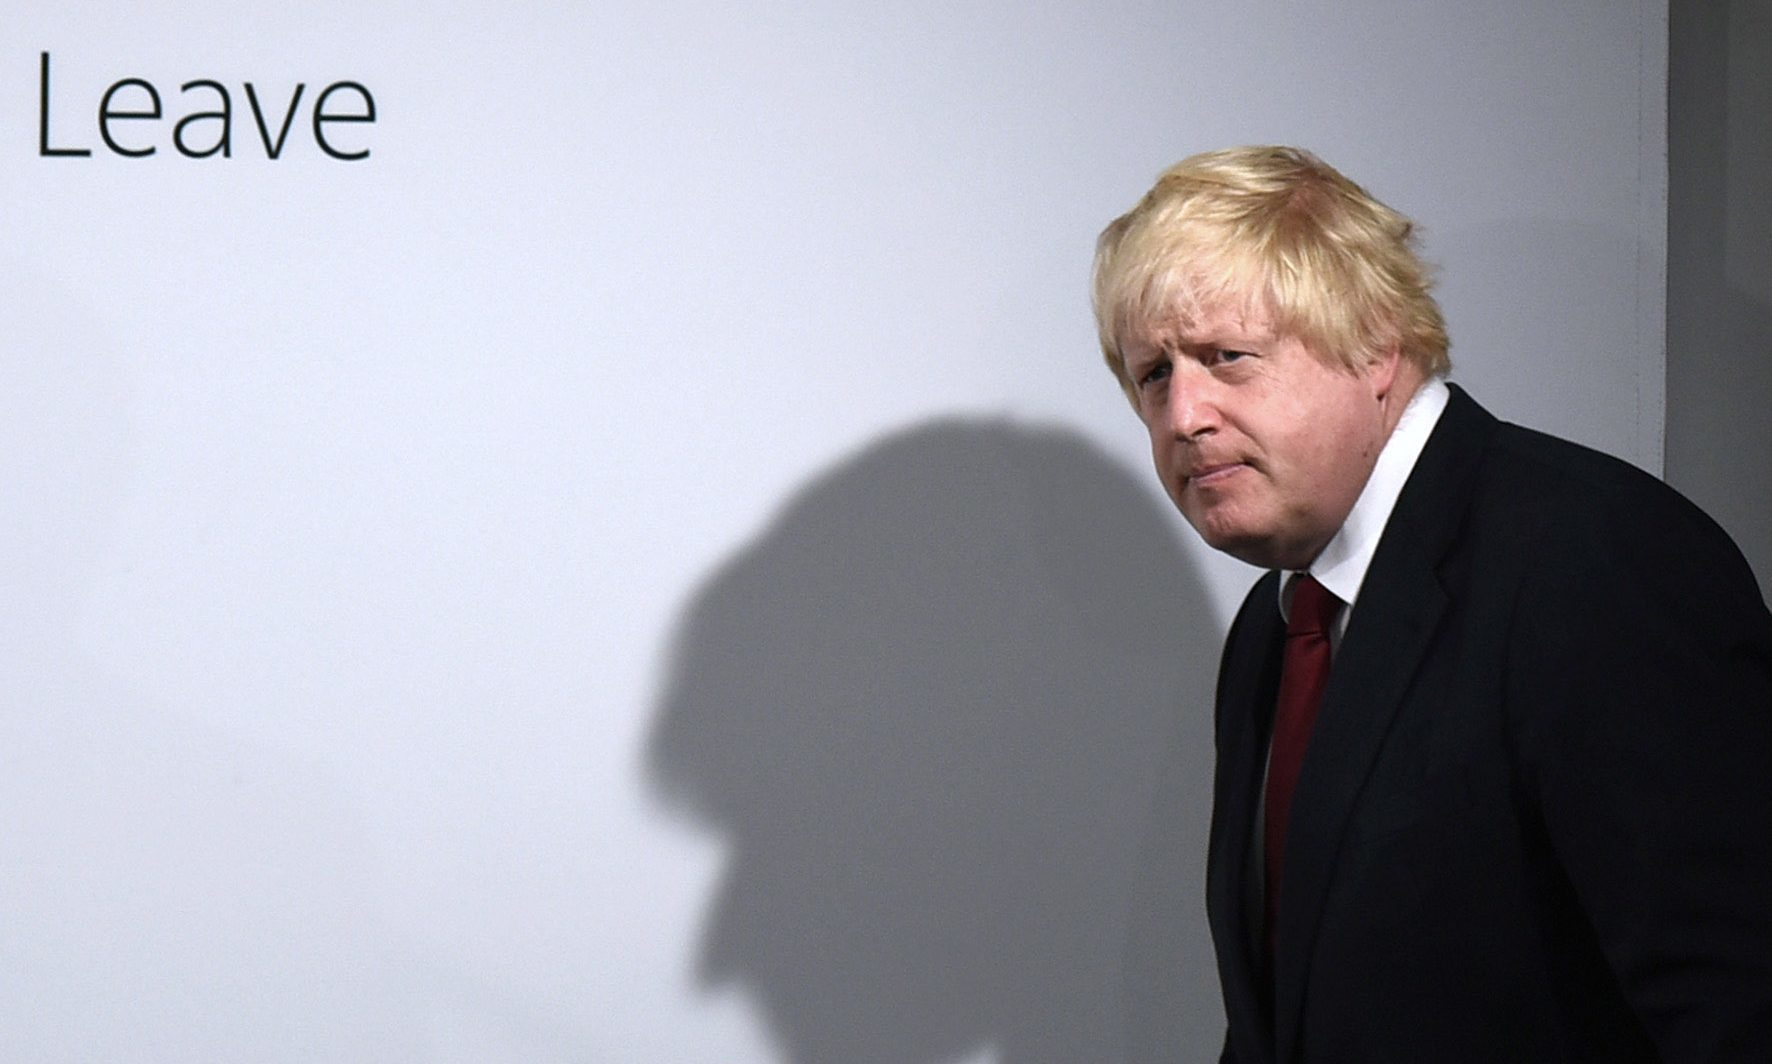 Boris Johnson arrives for what turned out to be a very low-key victory speech.